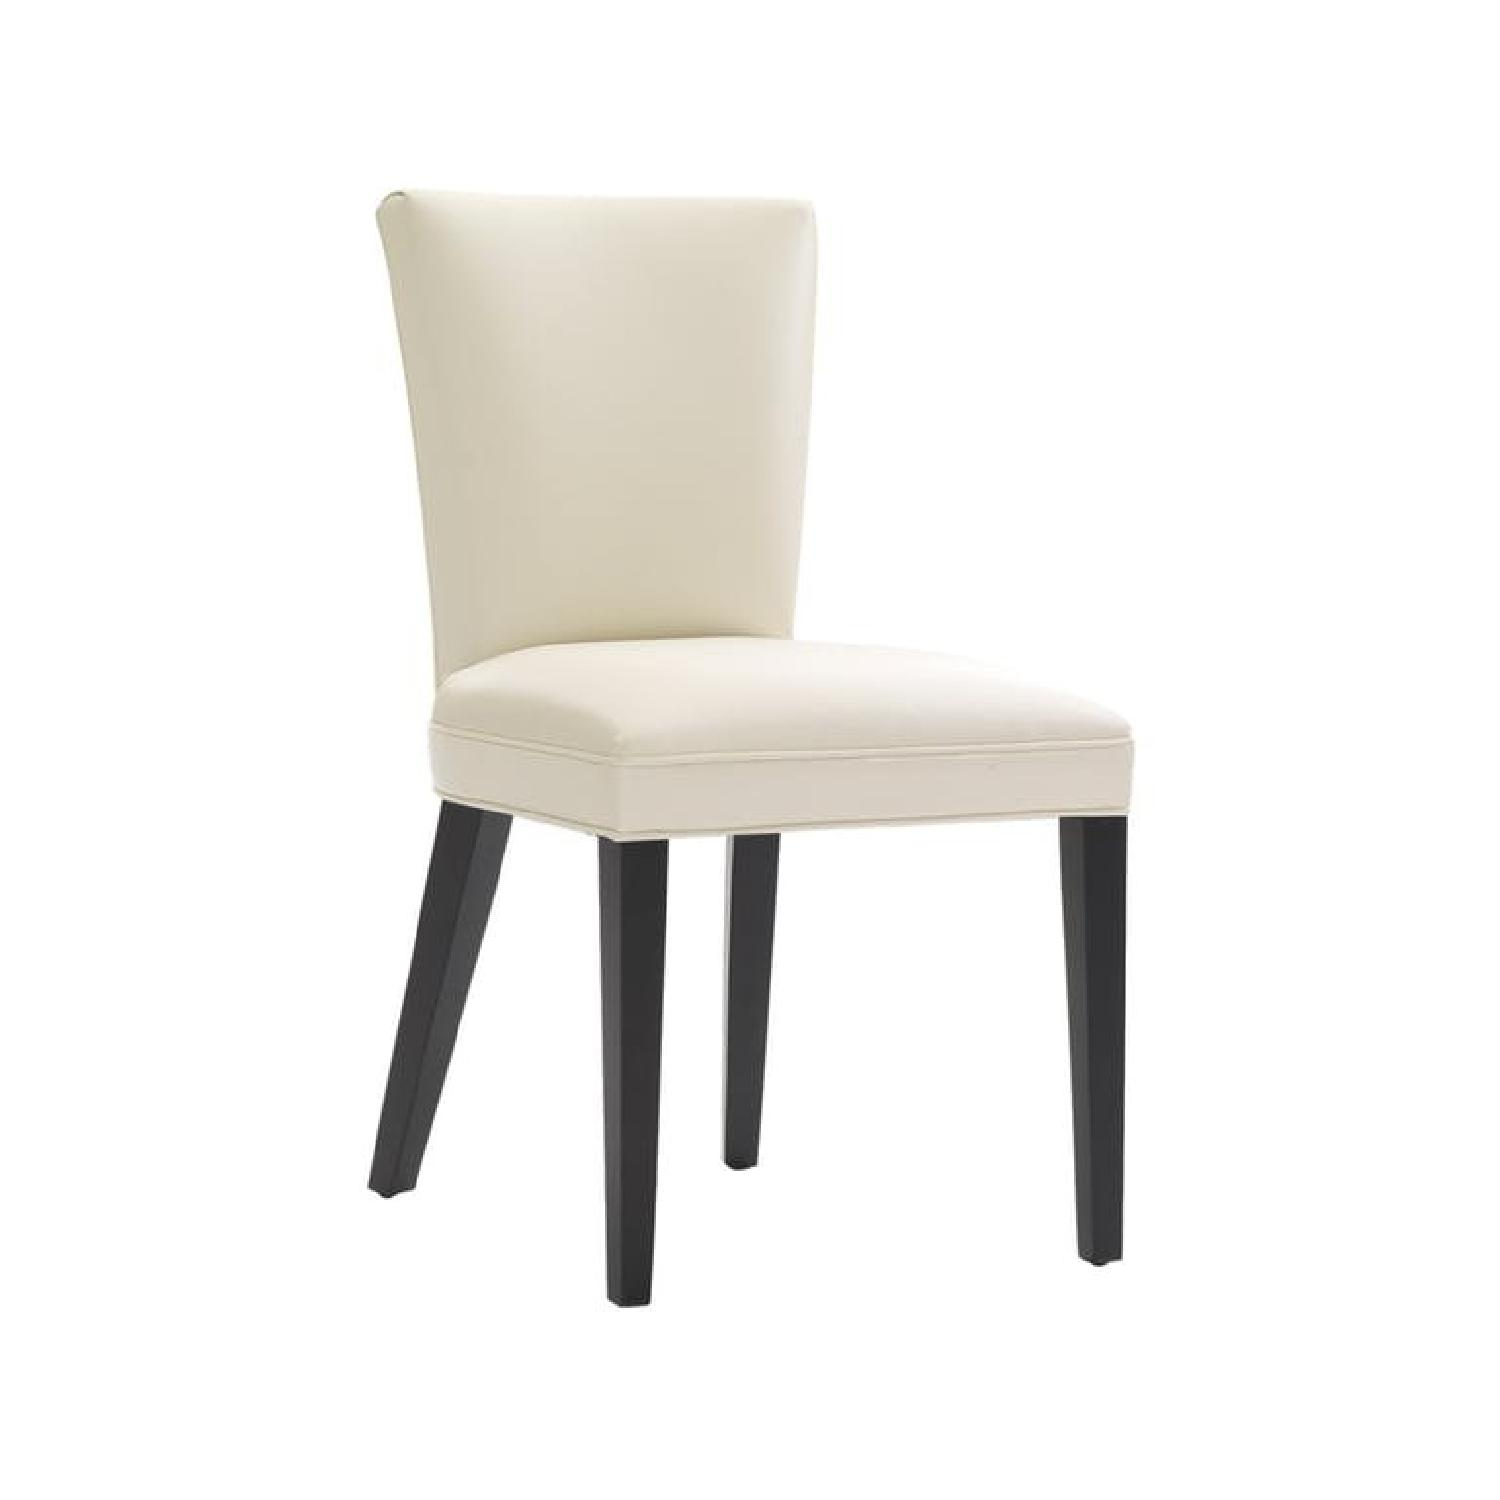 remy side chair review hanging vermont mitchell gold 43 bob williams leather aptdeco